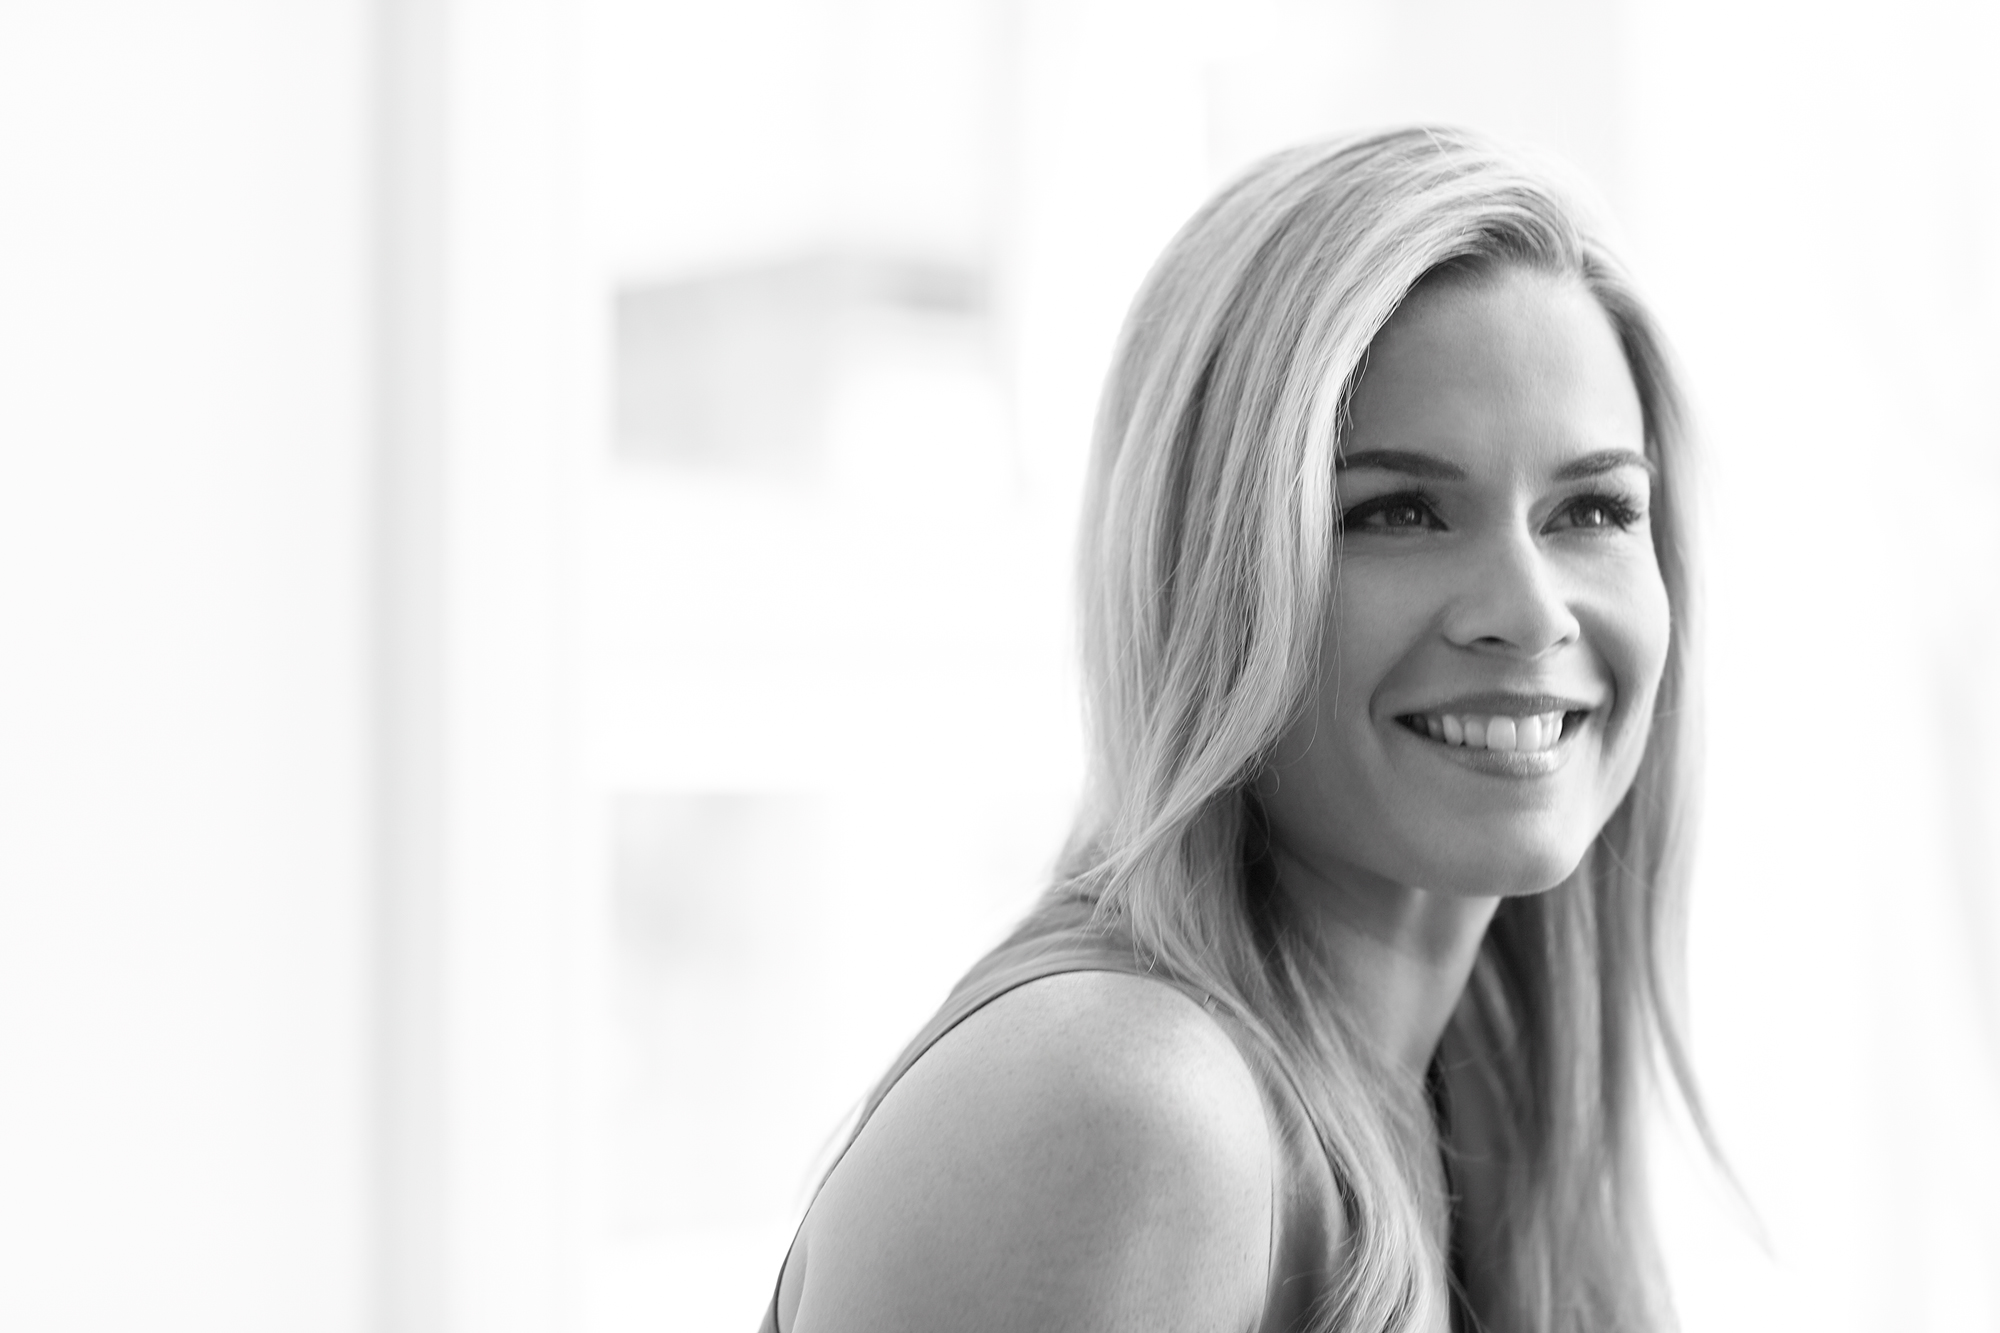 An Evening with Celebrity Chef Cat Cora - Tickets - Bacara Resort & Spa, Santa Barbara, CA - February 21, 2015